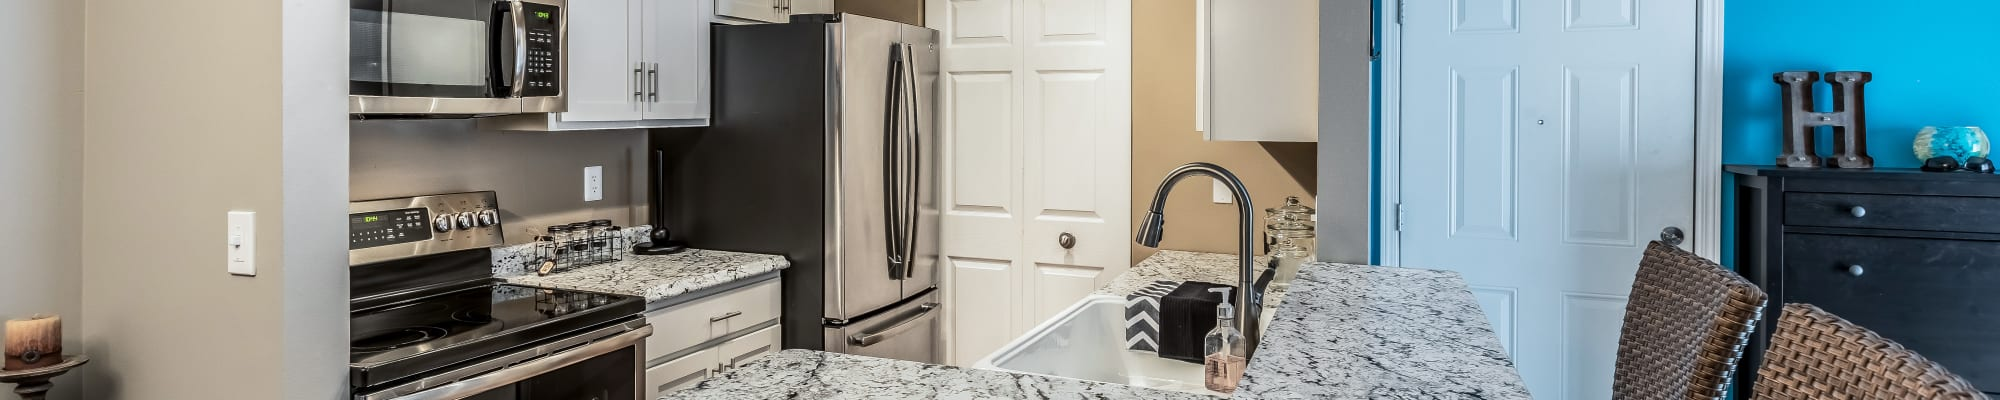 Pet Friendly at Waters Edge Apartments in Lansing, Michigan